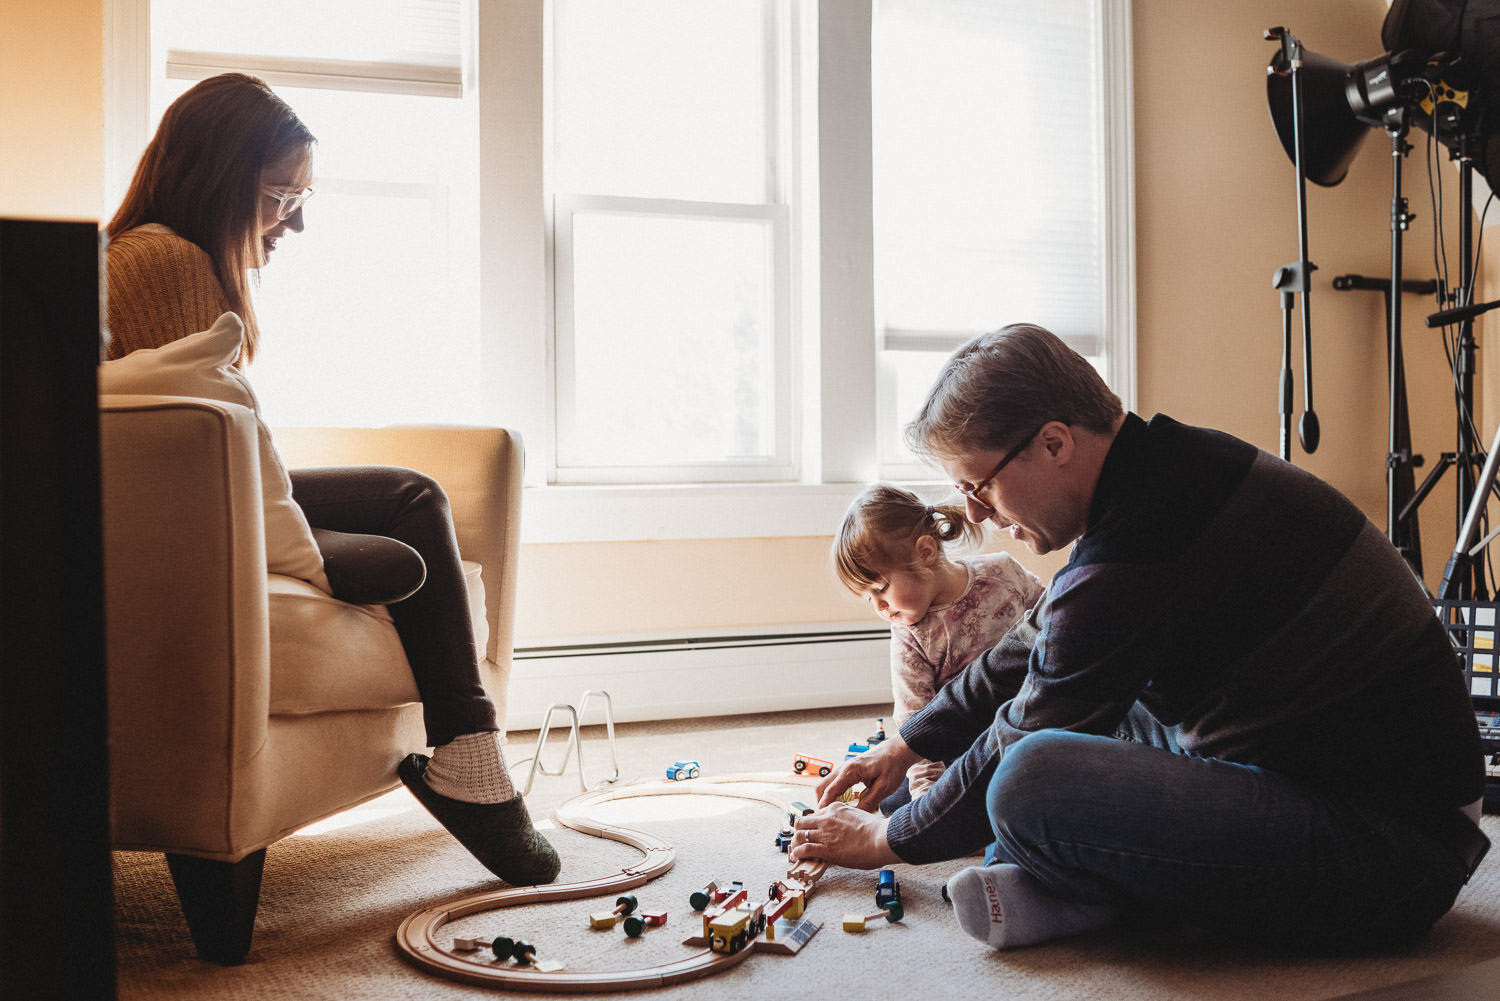 A family plays with a train set.